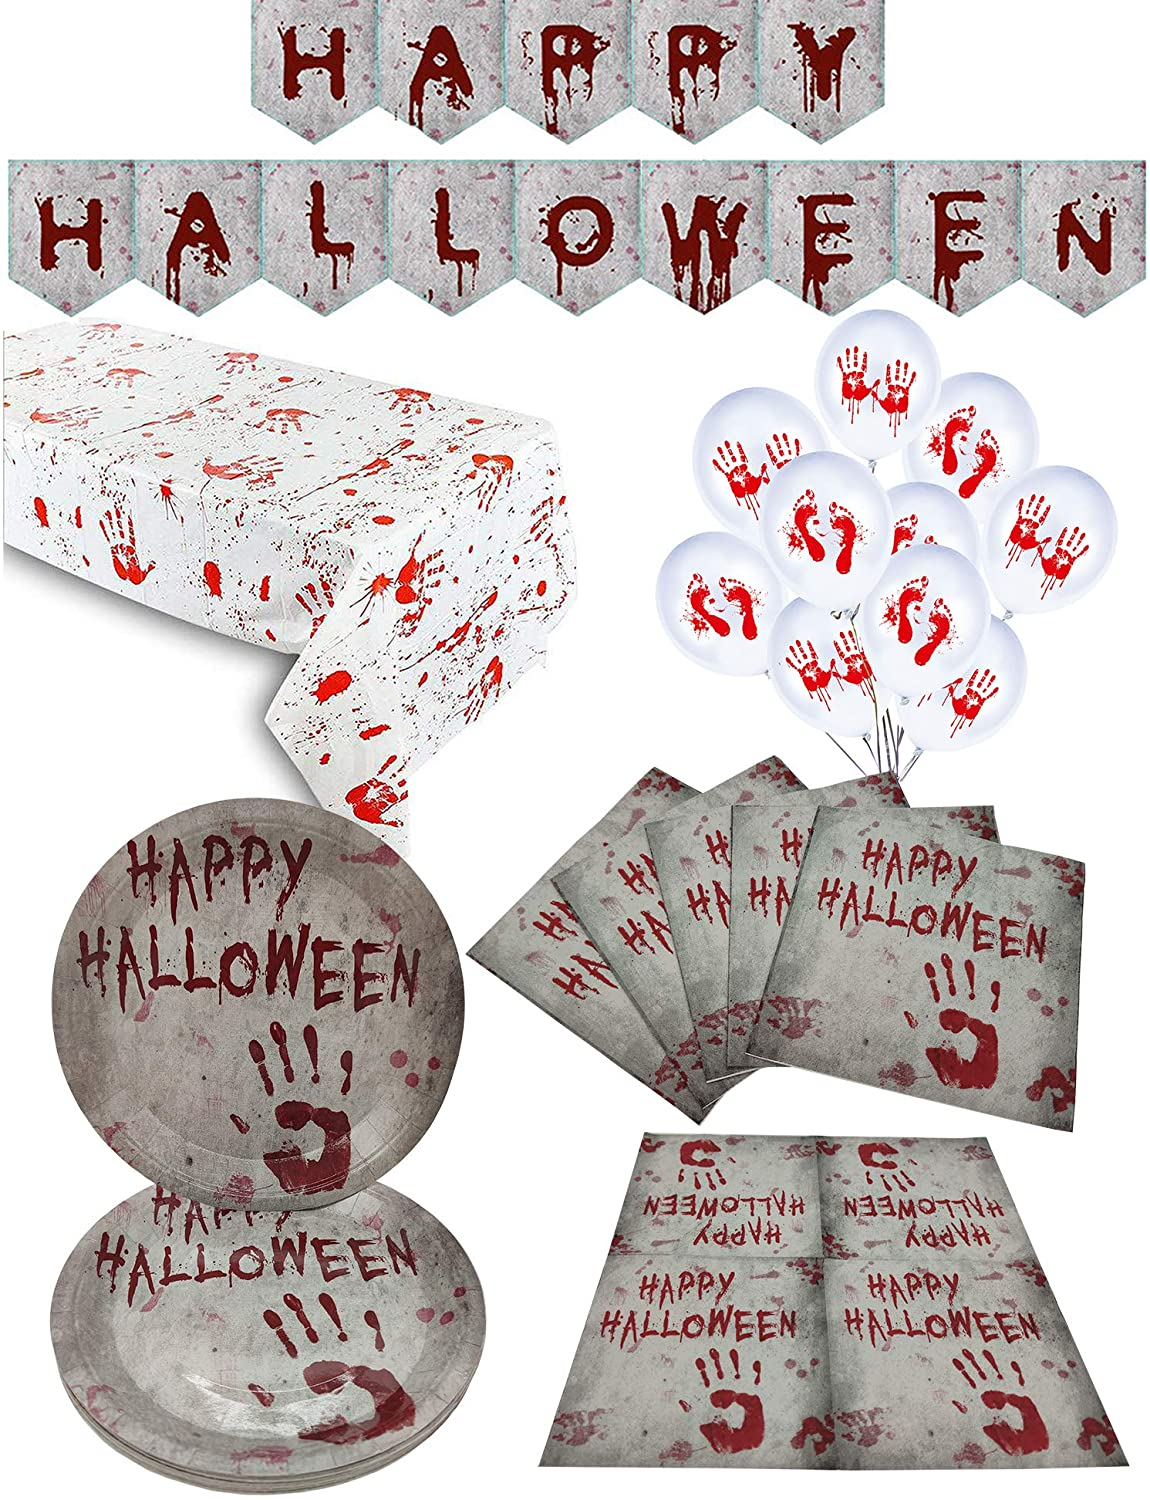 Halloween Party Supplies,1 Pack Party Tablecloth,16 Plates,24 Napkins,Happy Halloween Banner,Scary and Bloody Zombie Handprints Table Cover,Perfect for Halloween Scary Party Decorations (16 Guest)